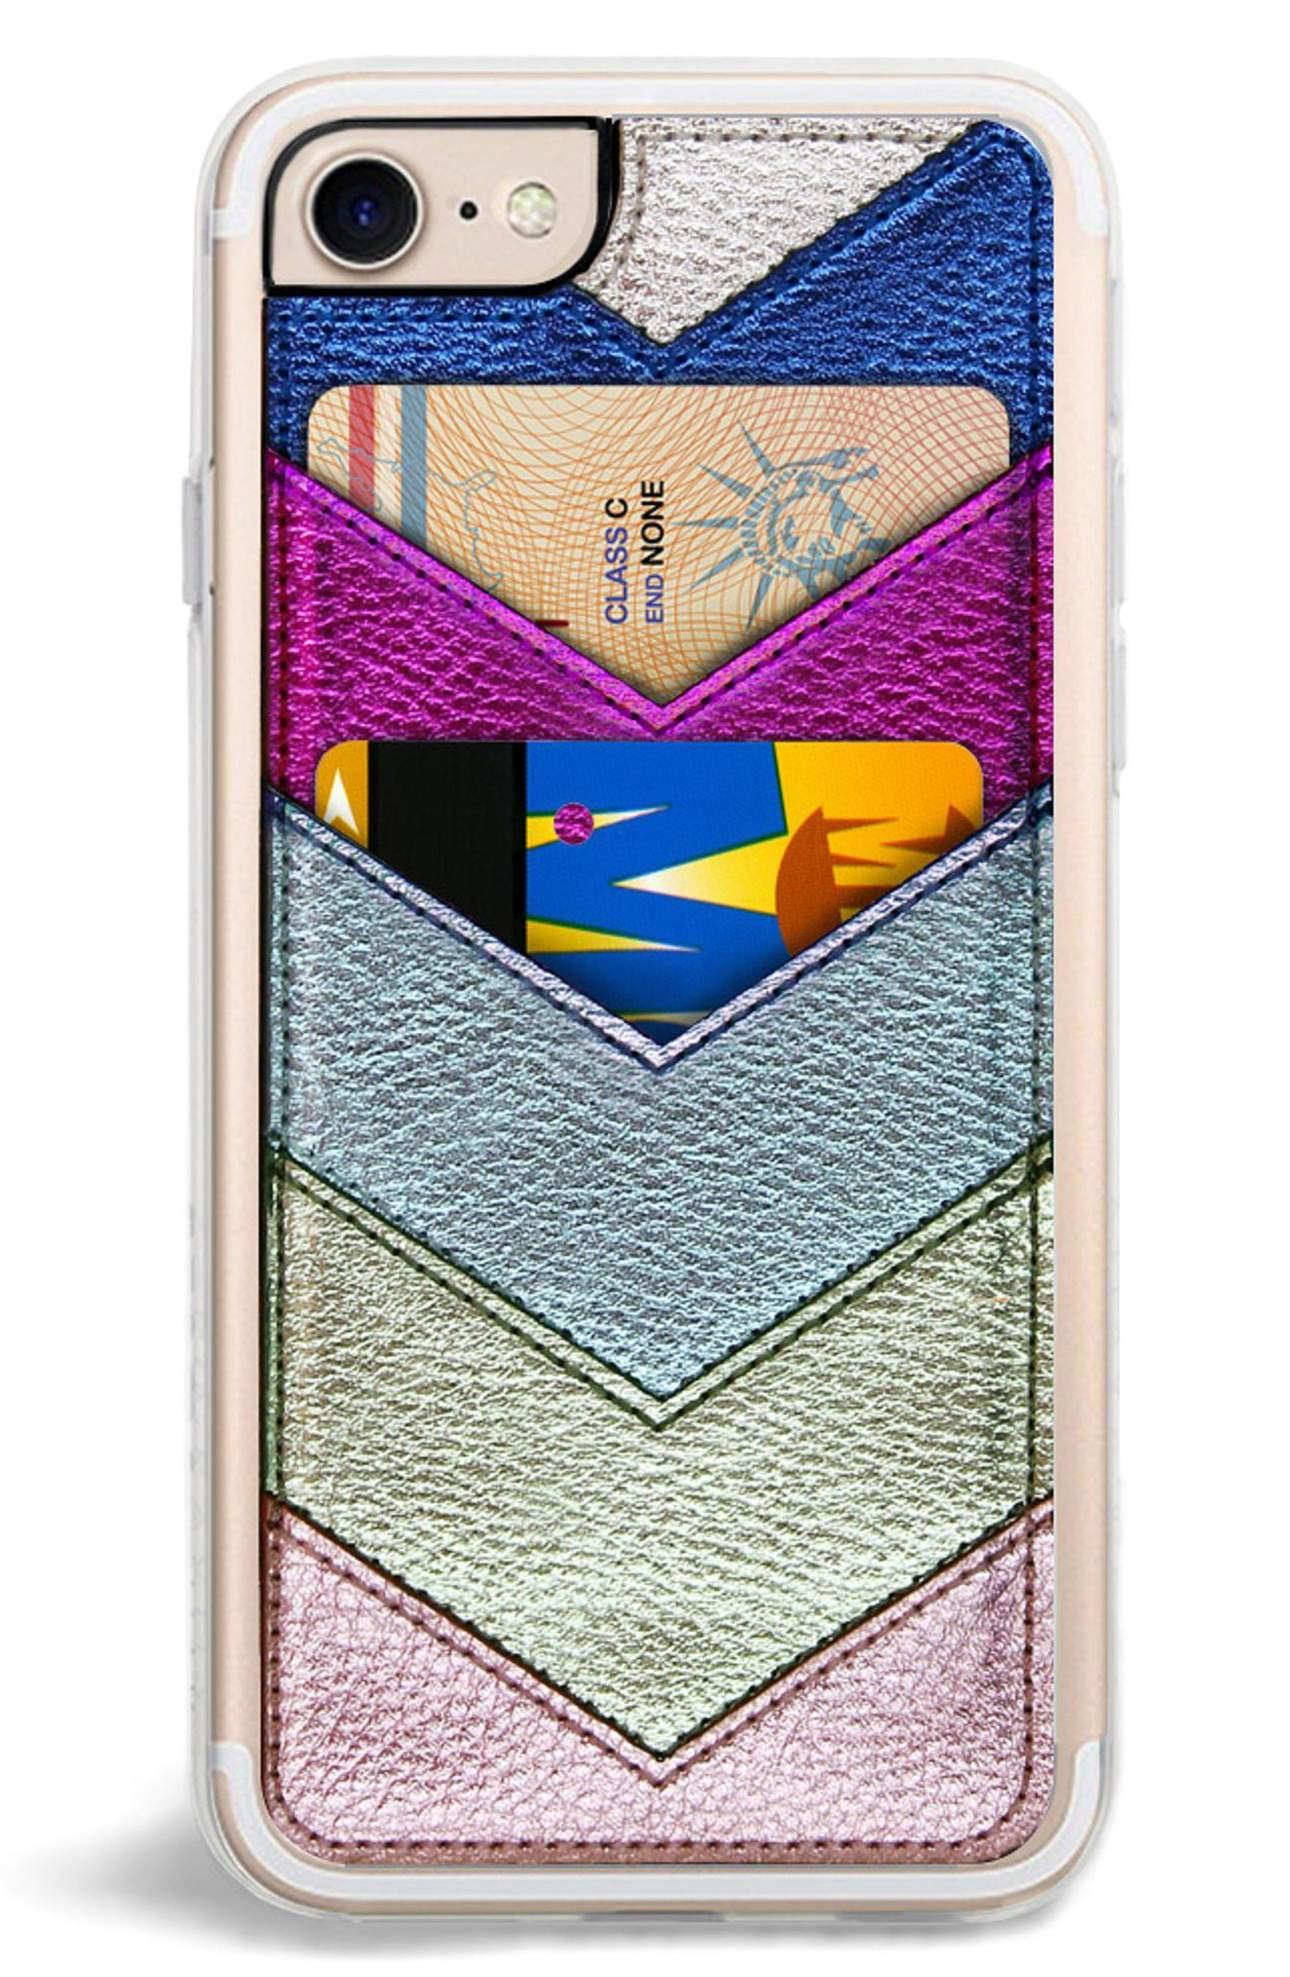 Chevron Faux Leather iPhone Case - $35. This is a great gift for the mom-on-the-go who is always misplacing her phone/credit cards (I literally just described myself). Plus it's super cute and affordable. Purchase at Nordstrom. (Image: Nordstrom)<p></p>